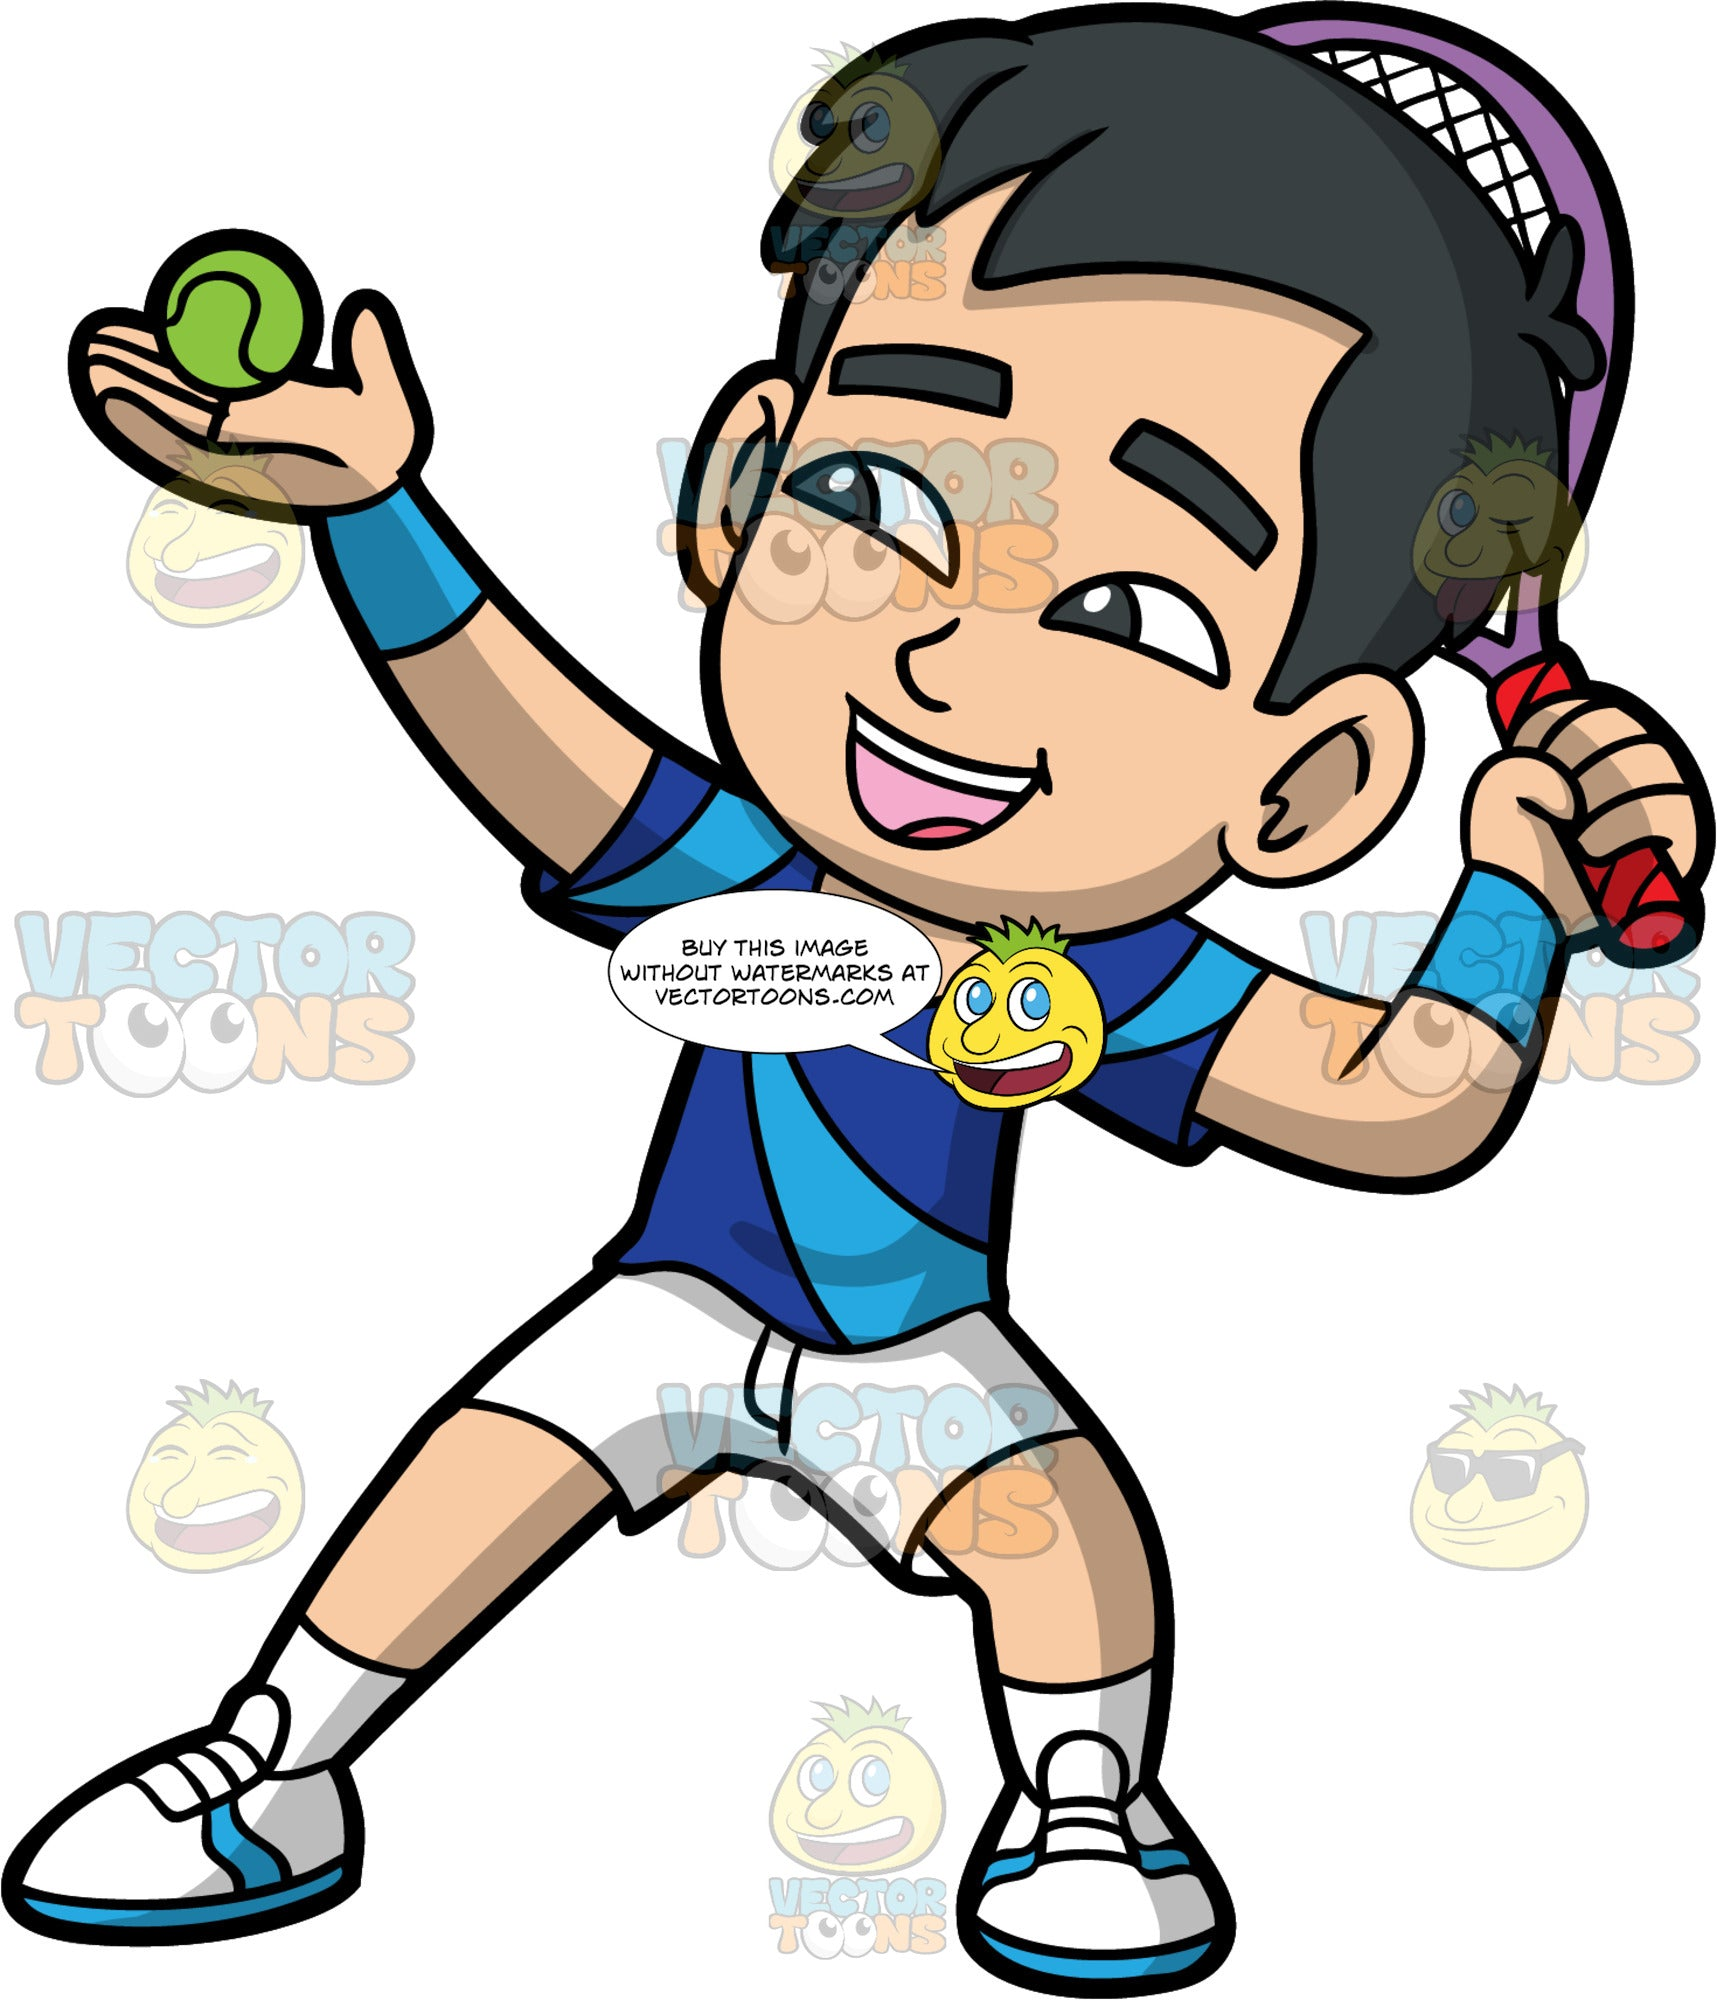 Young Kevin Getting Ready To Serve A Tennis Ball. A young Asian boy wearing white shorts, a blue t-shirt, and white tennis shoes, holds a tennis ball in his hand and a racquet behind his head, as he prepares to serve the ball